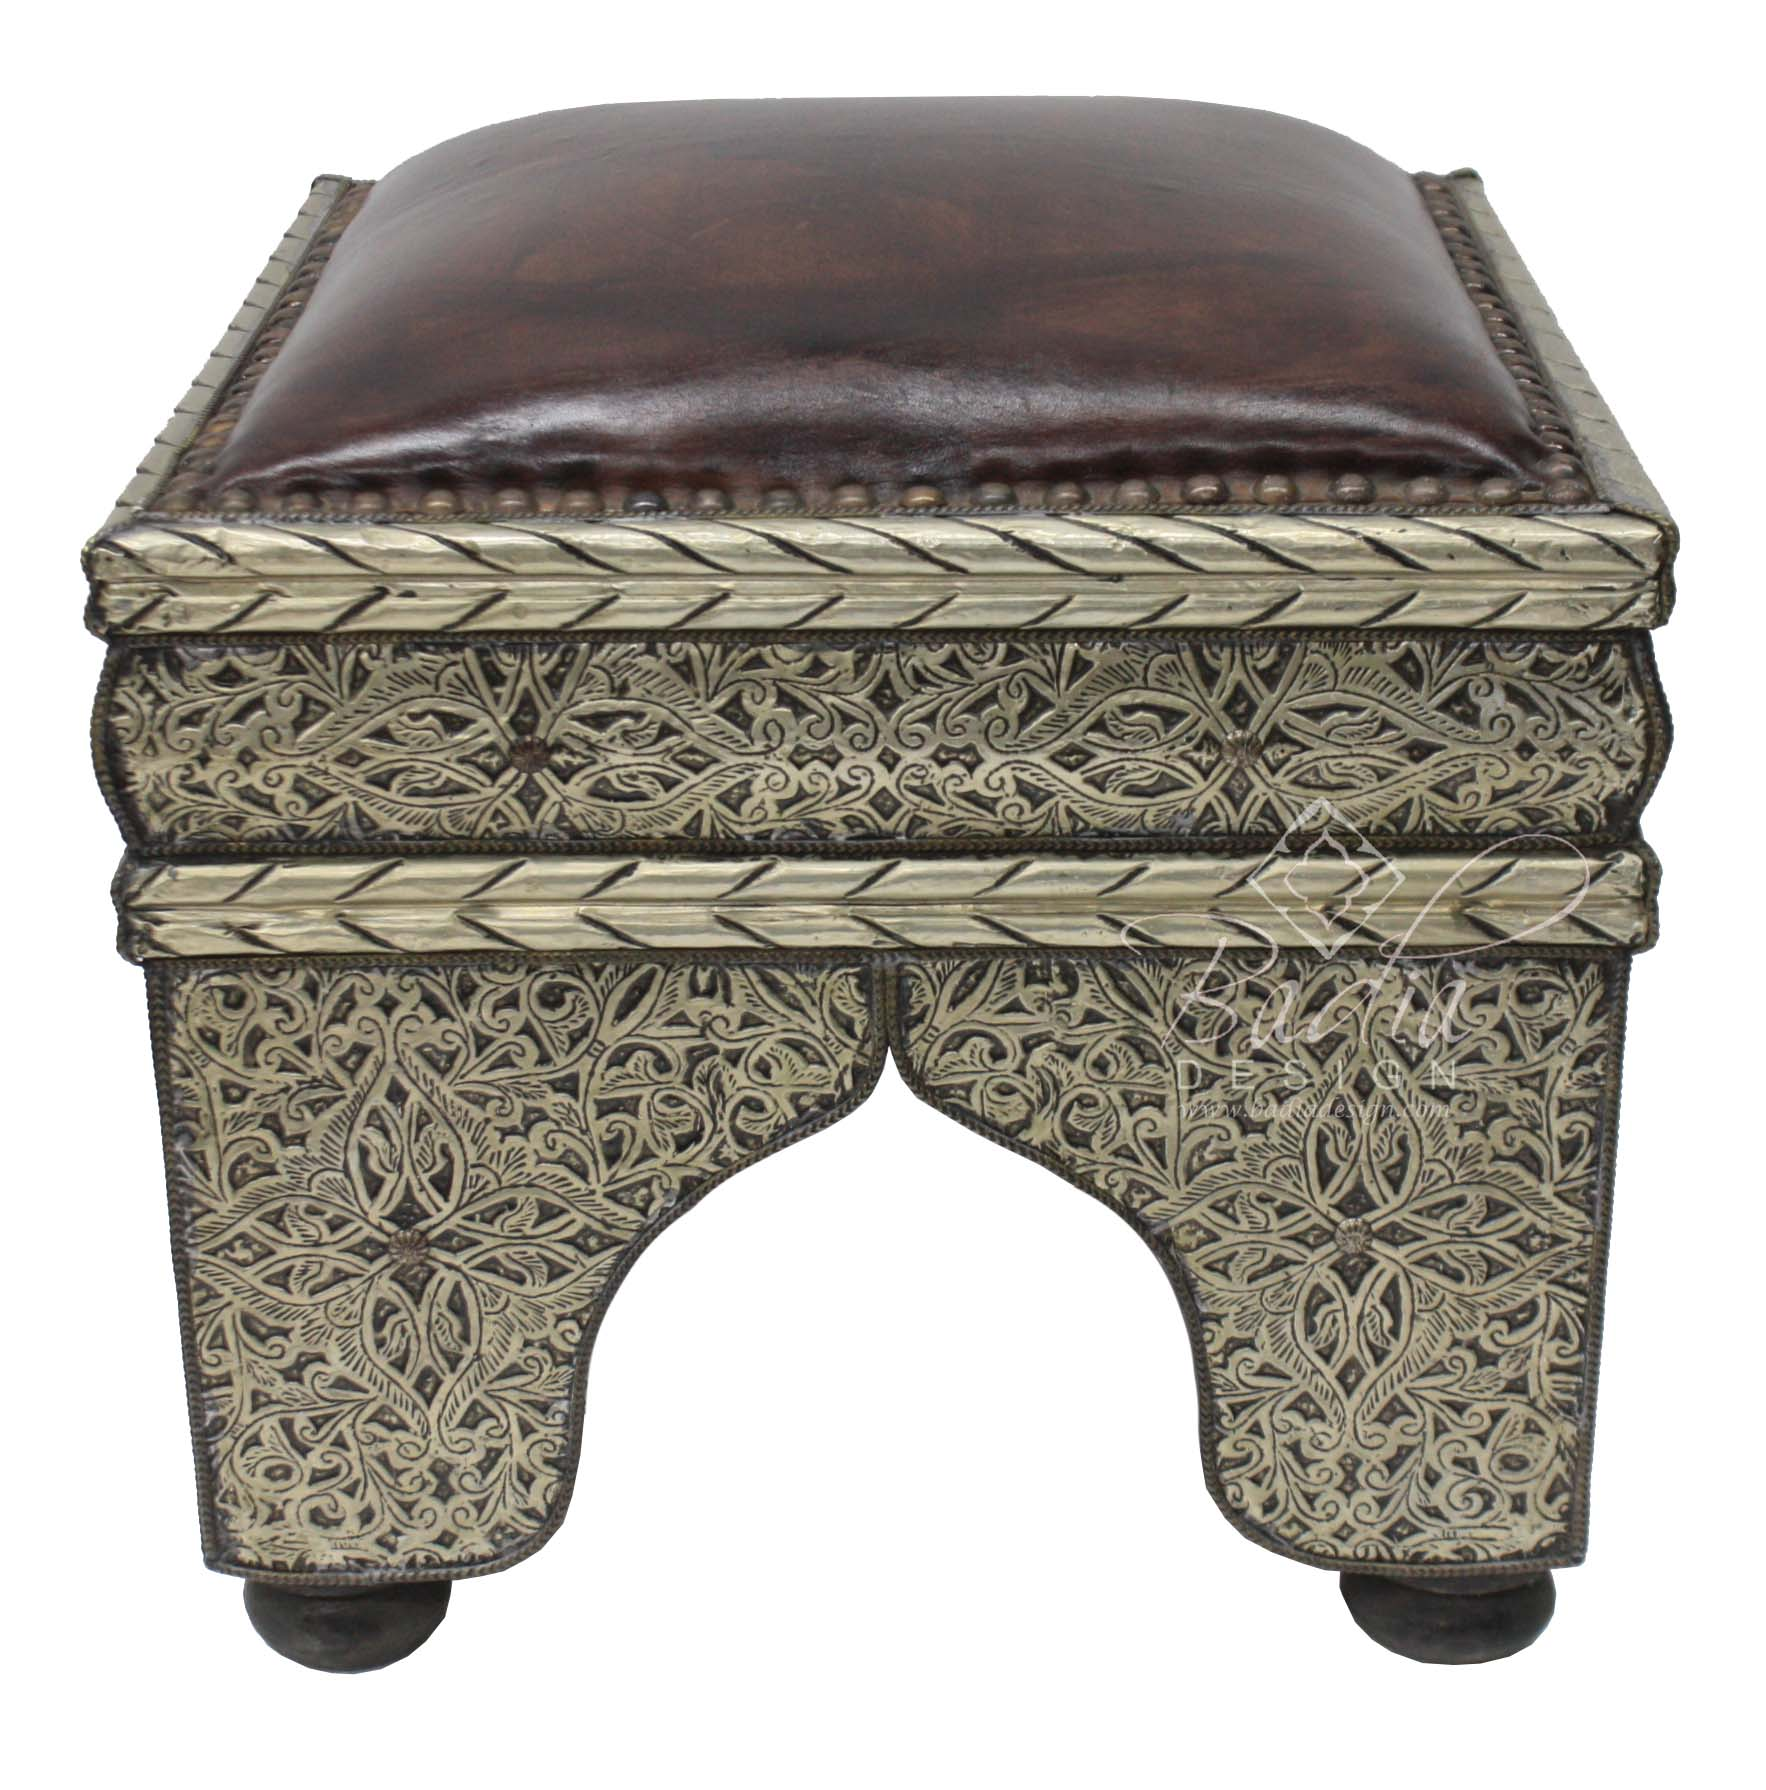 moroccan-metal-and-brown-leather-ottoman-ml-ch019.jpg